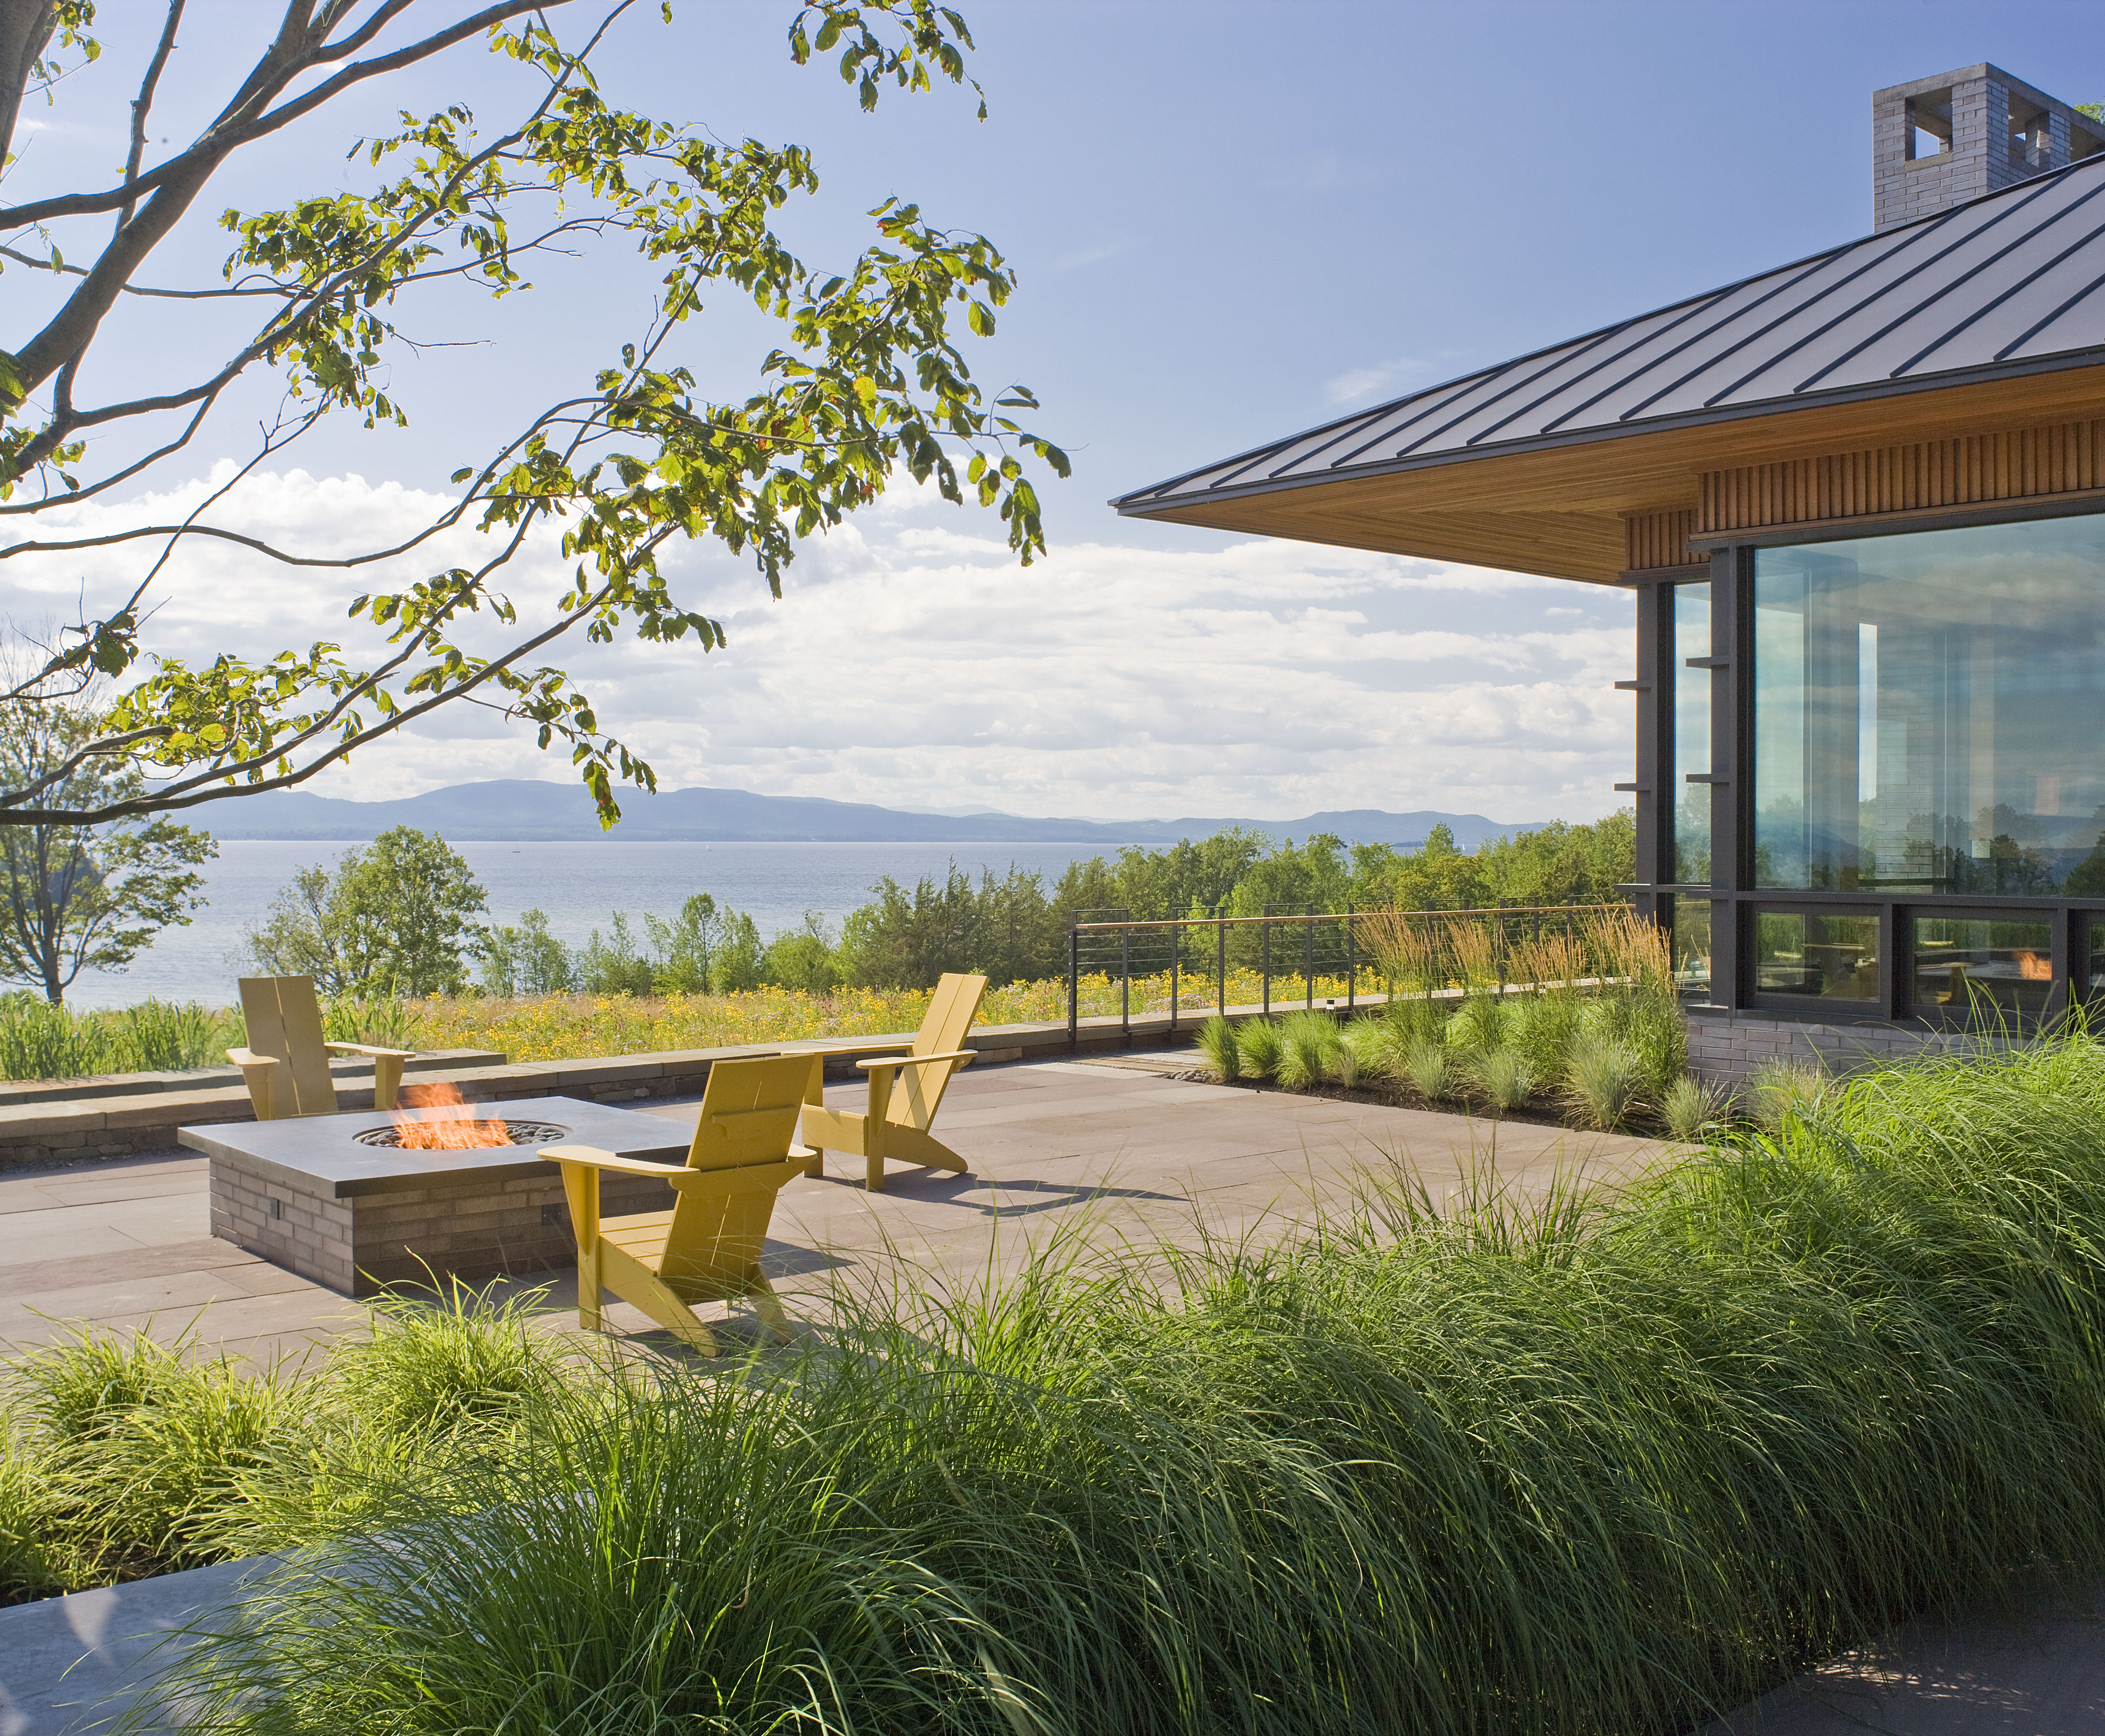 Asla 2012 professional awards quaker smith point residence for Garden design awards